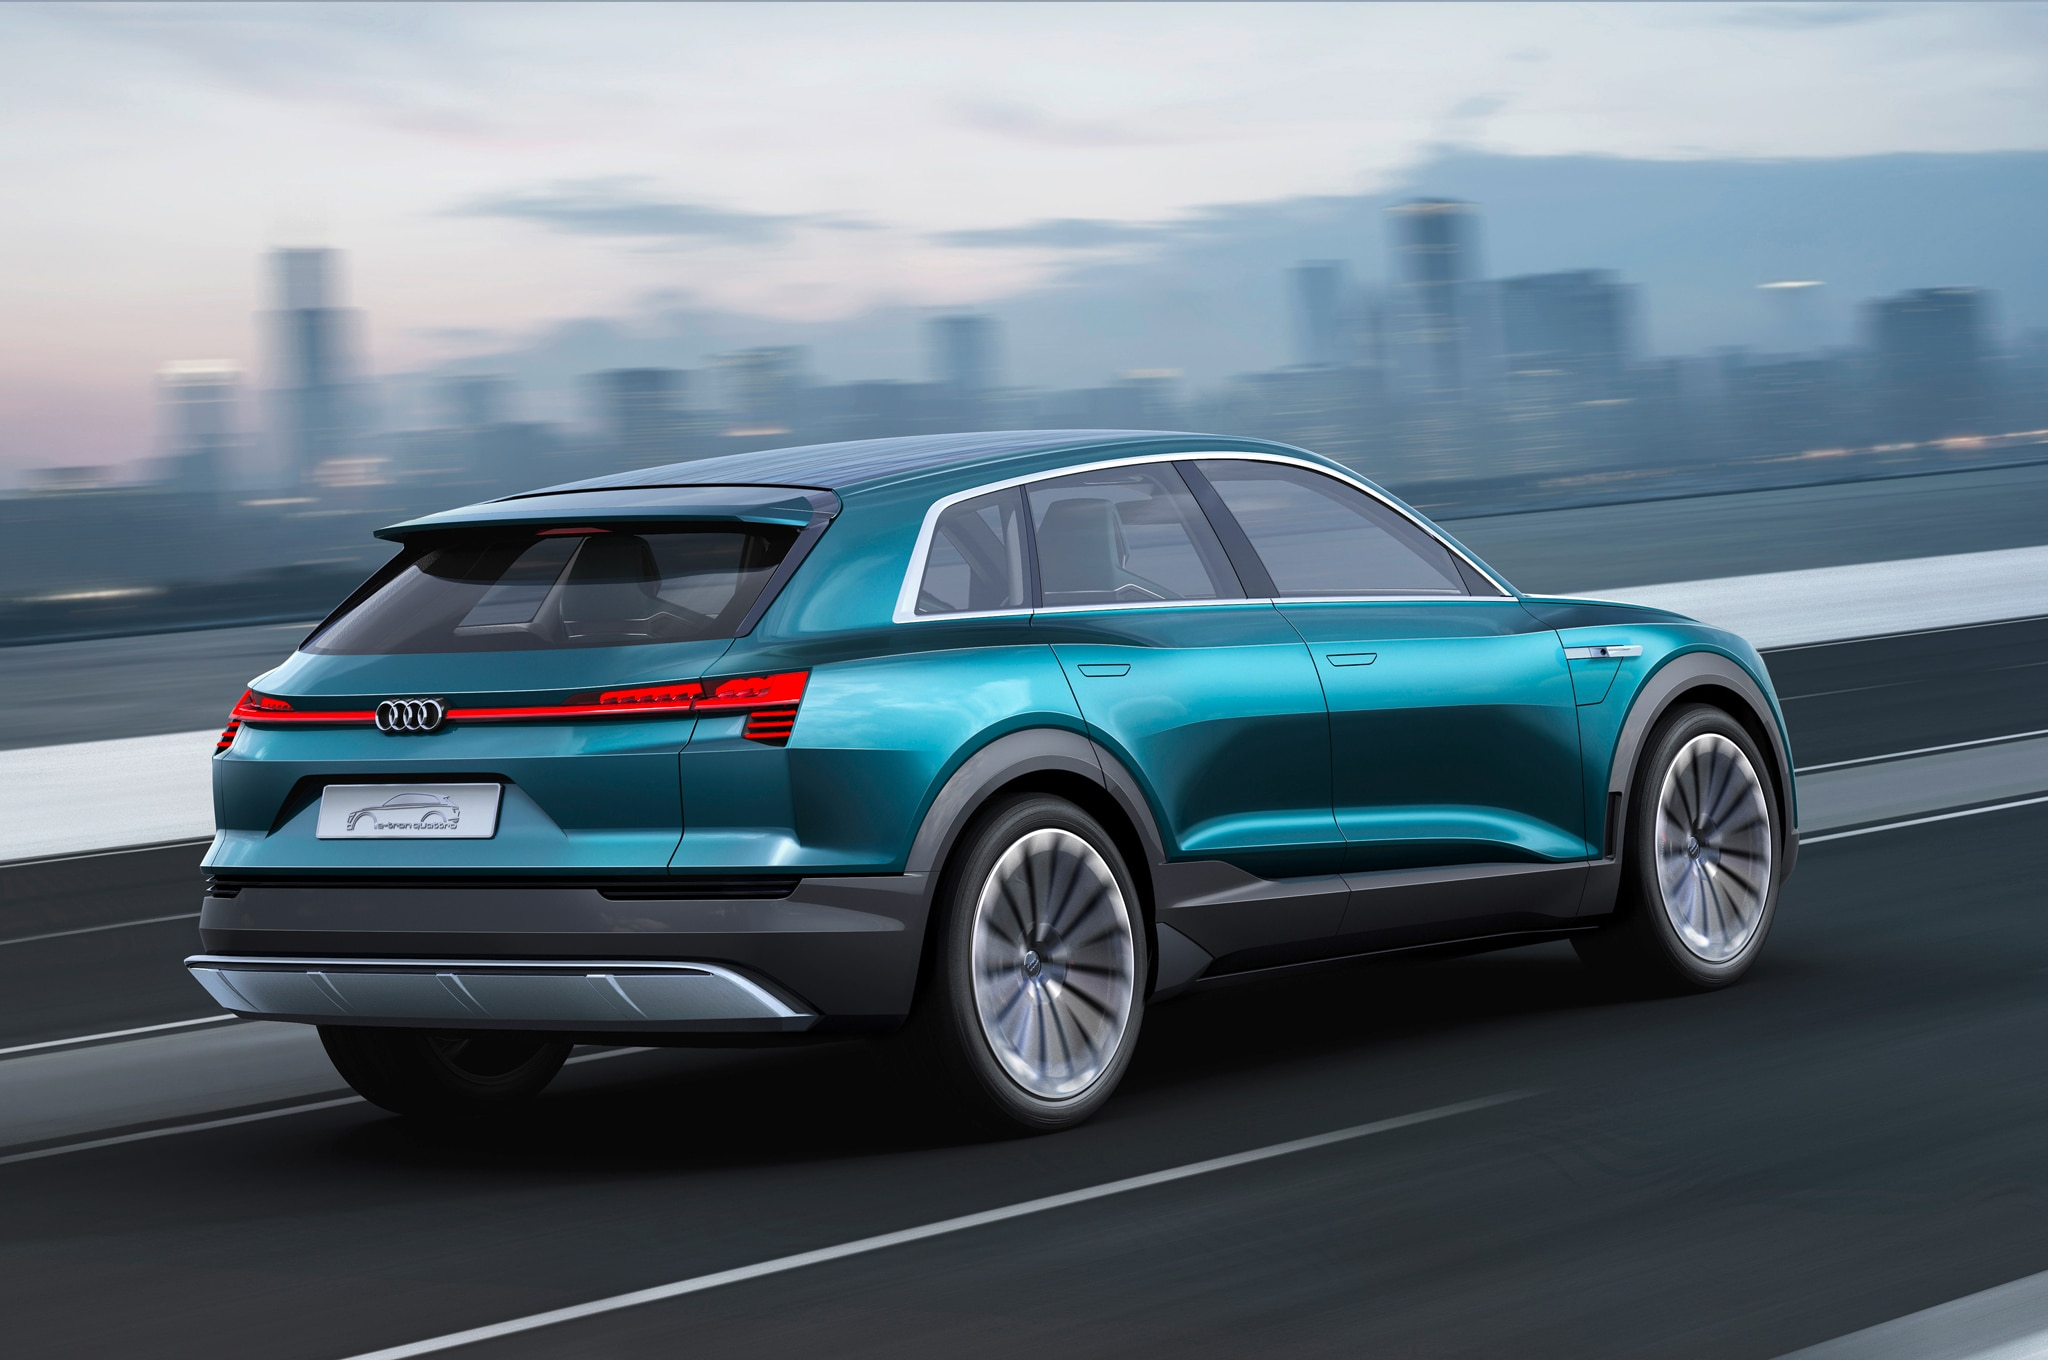 2018 audi electric. simple audi show more on 2018 audi electric